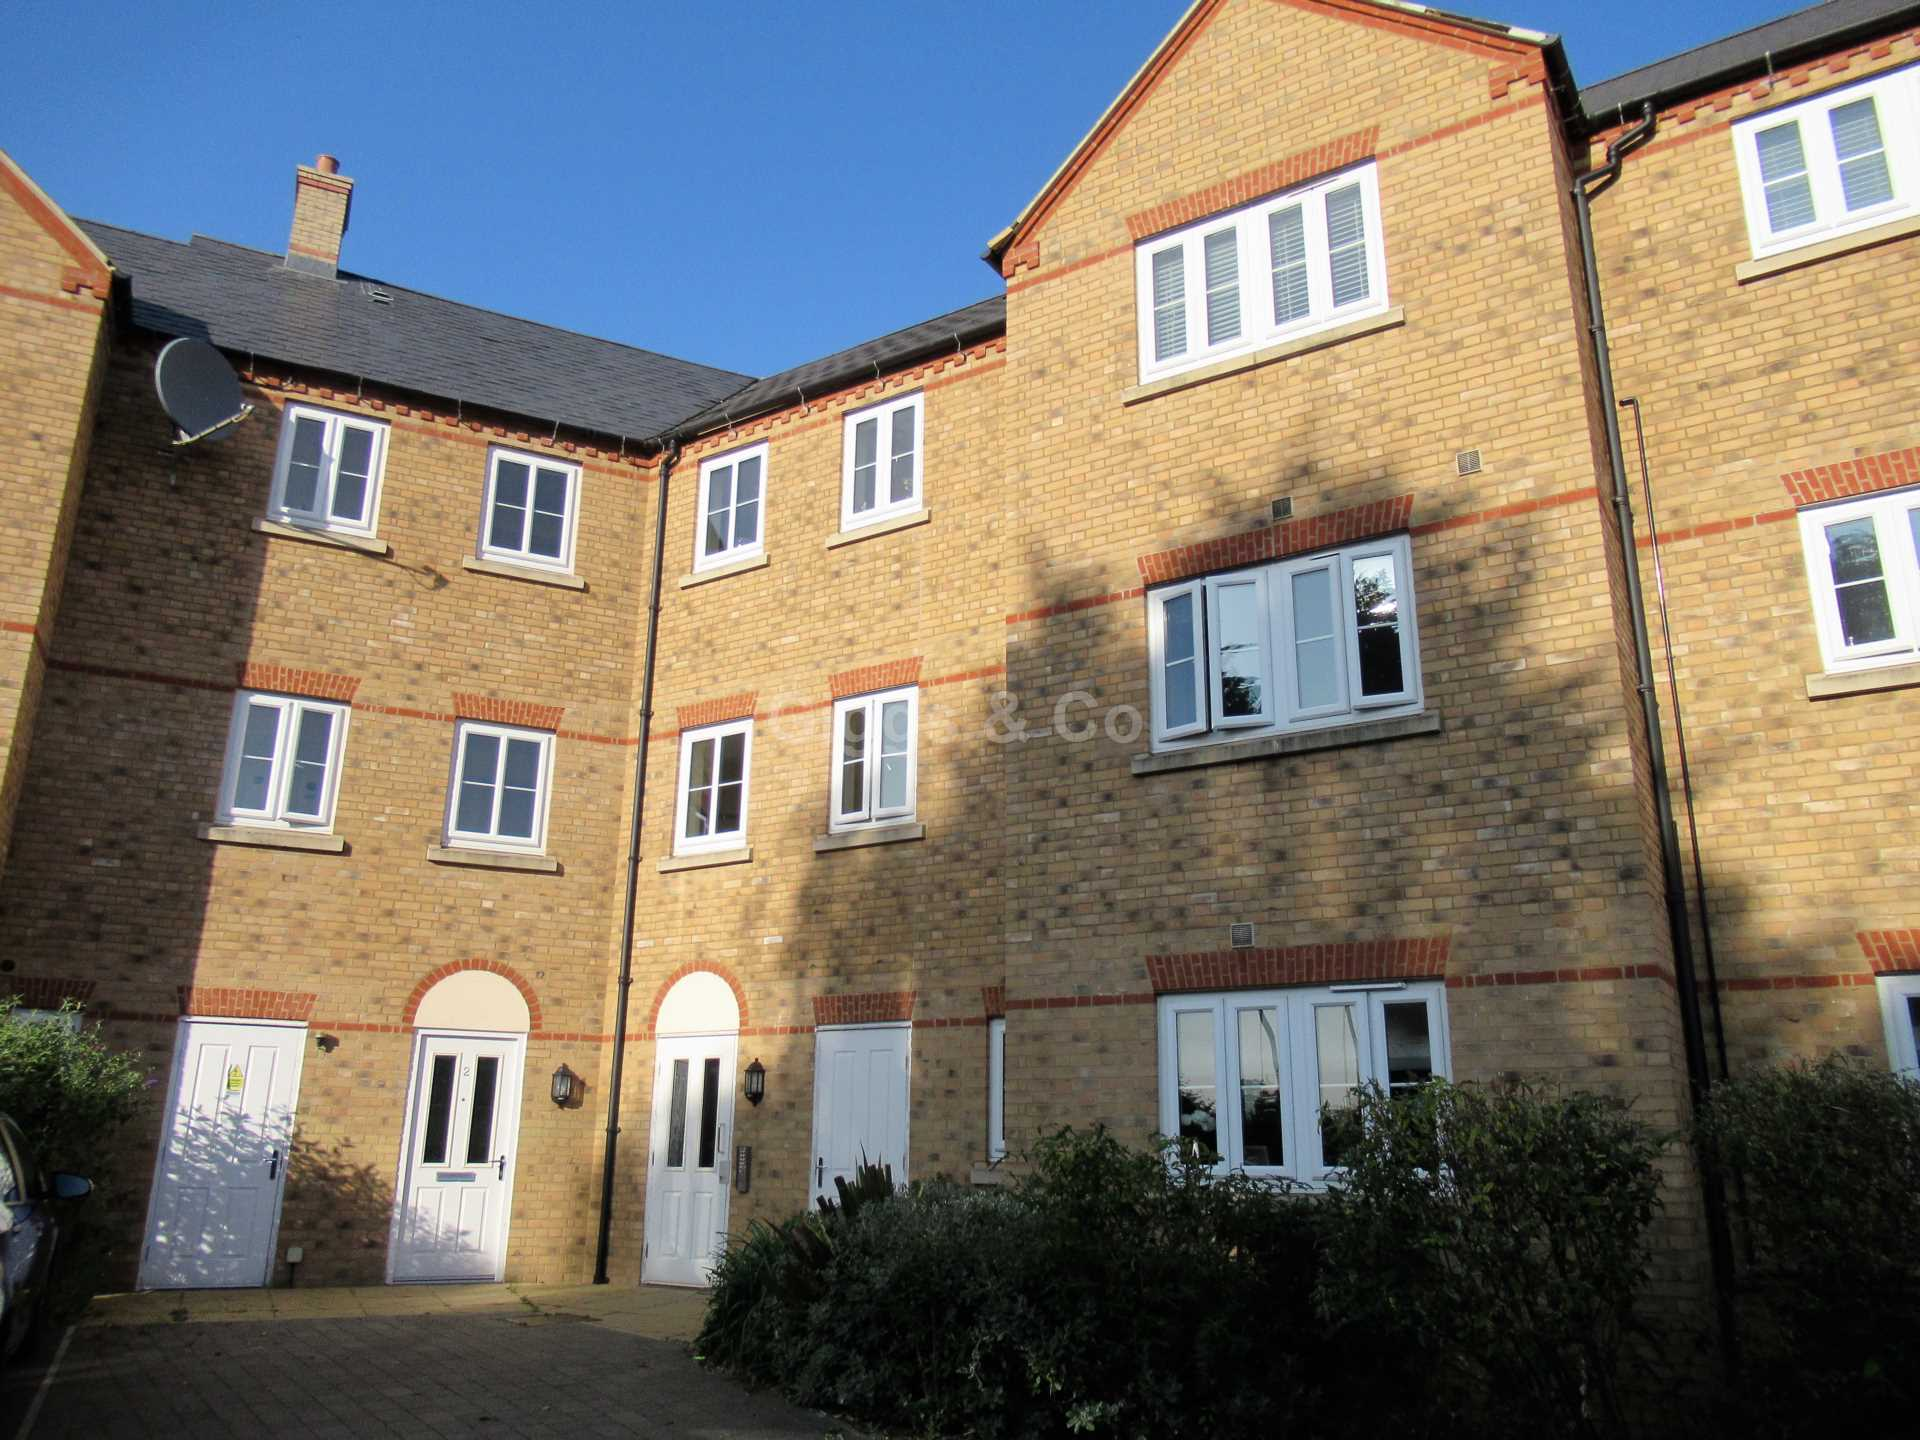 2 bed apartment to rent in Sovereign Court, St Neots, PE19